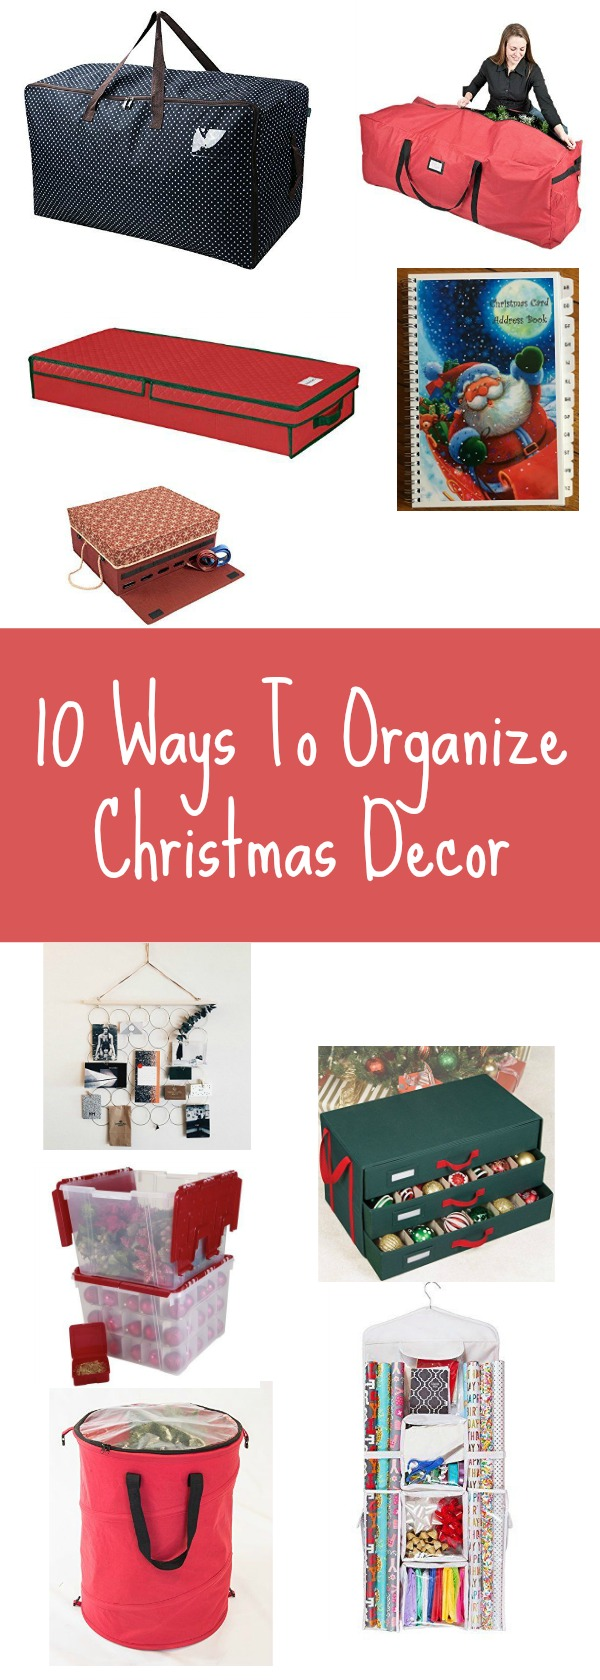 10 ways to organize christmas decor pinterest graphic